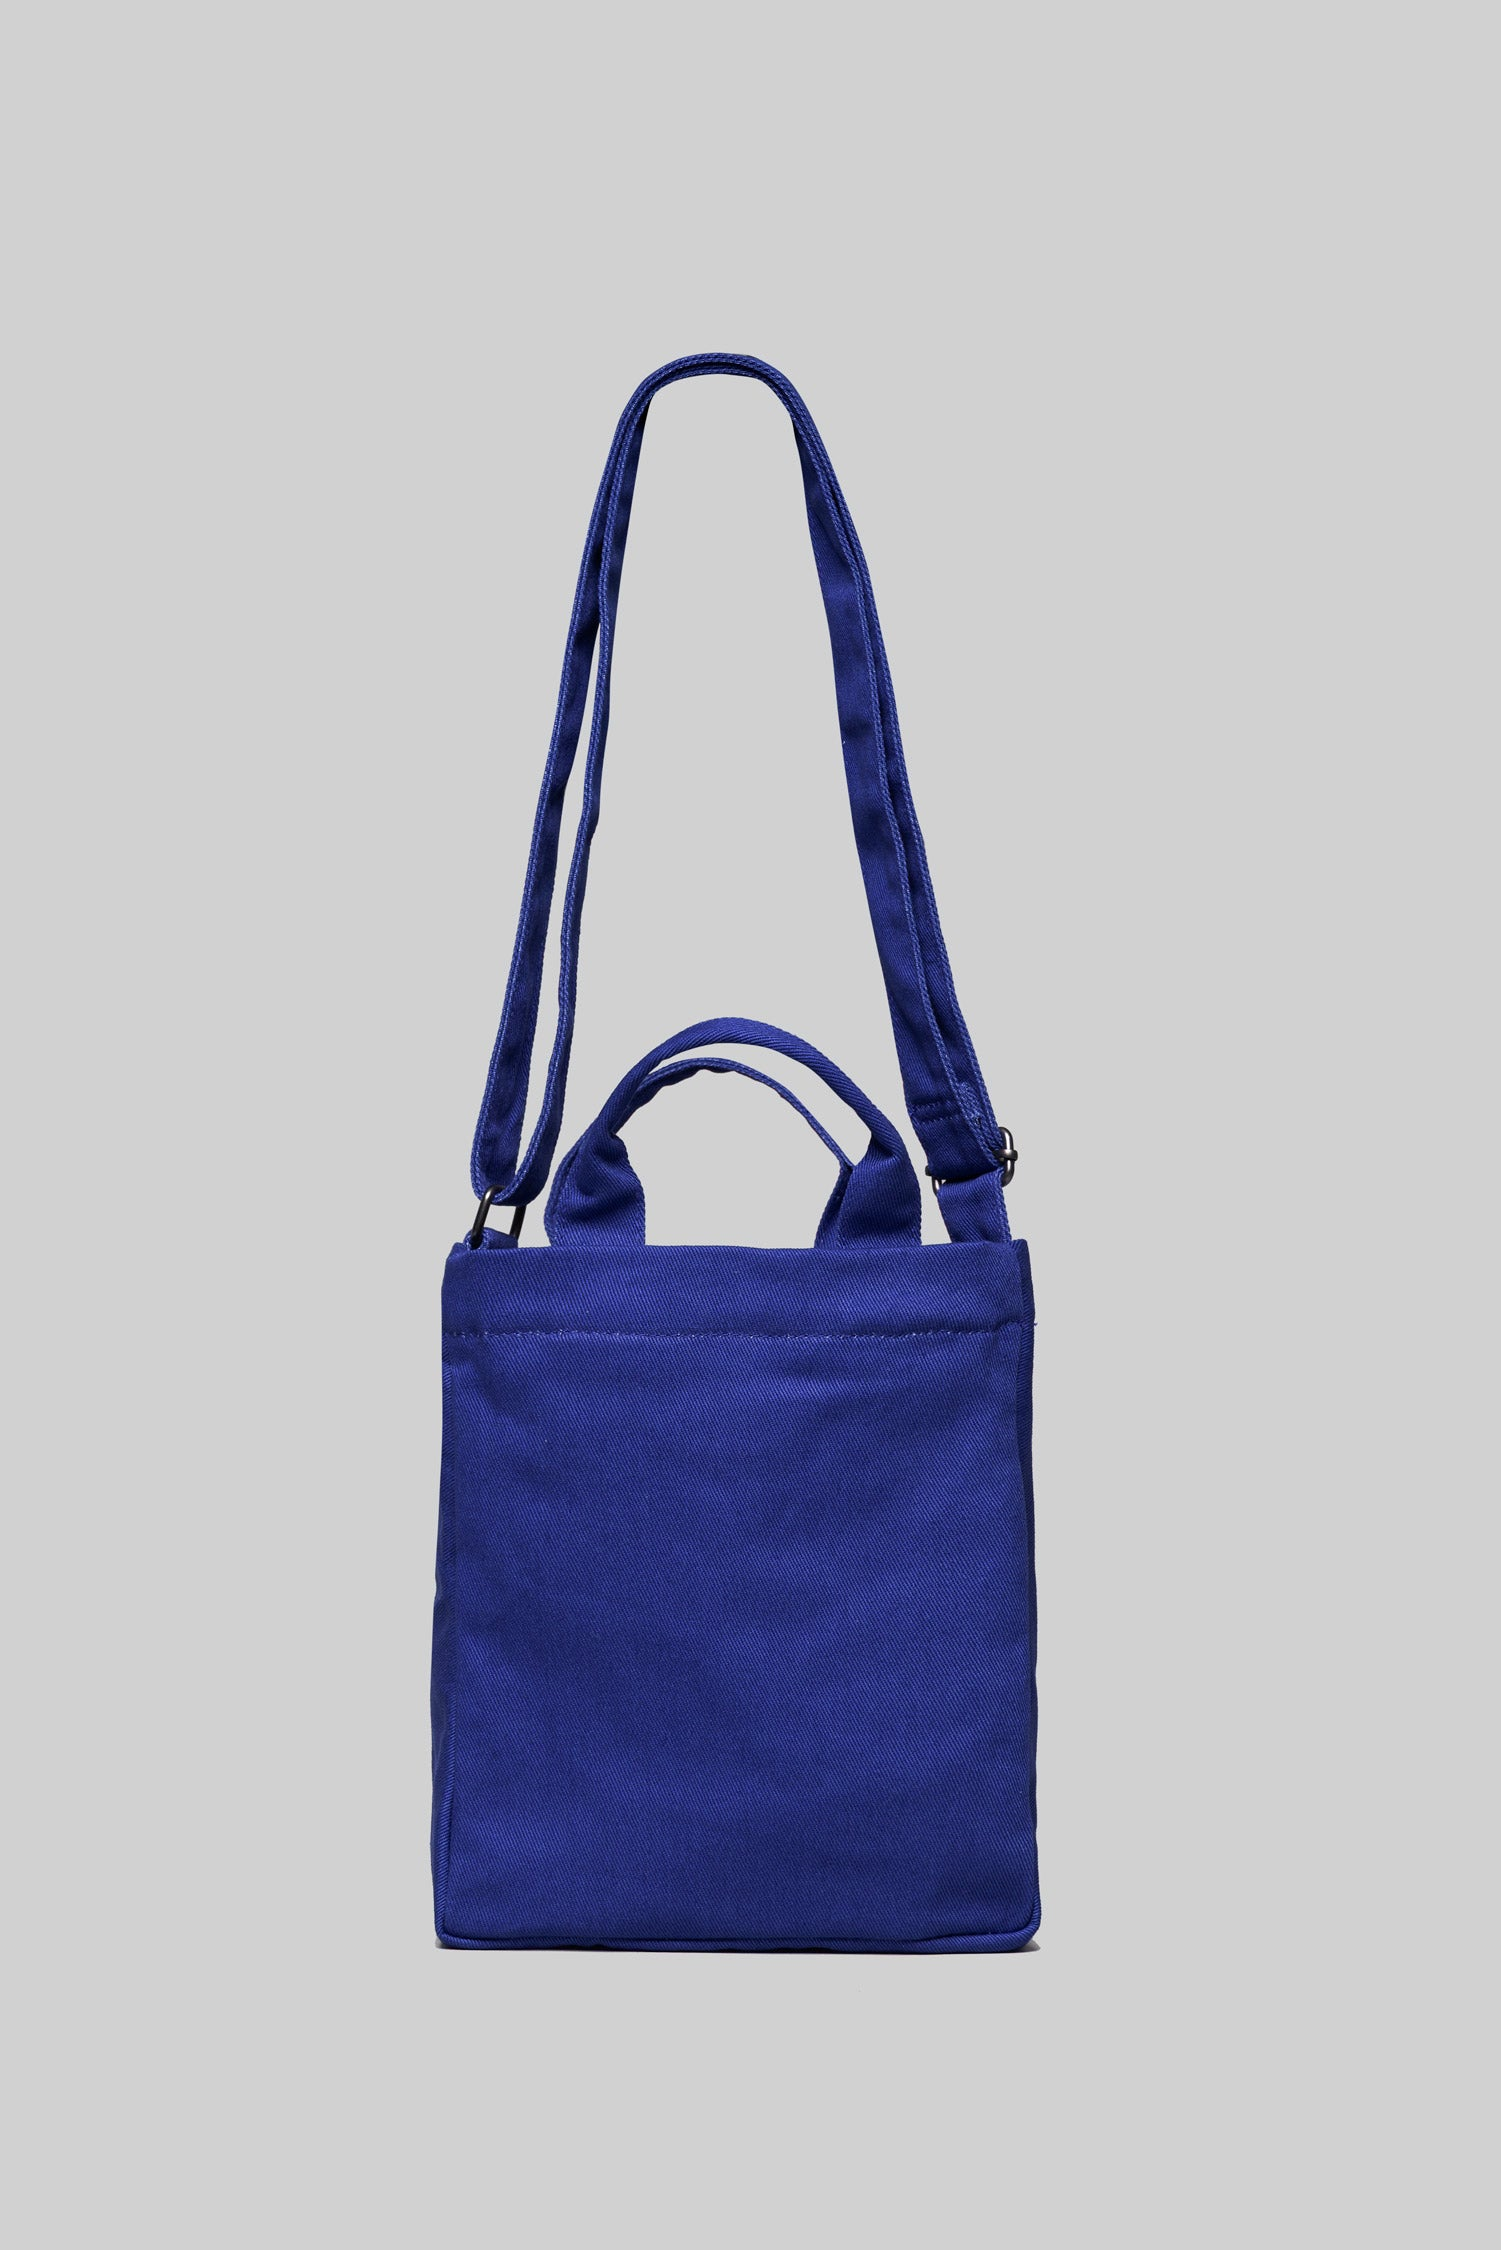 ØLÅF Mini Tote Bag <br>Royal Blue